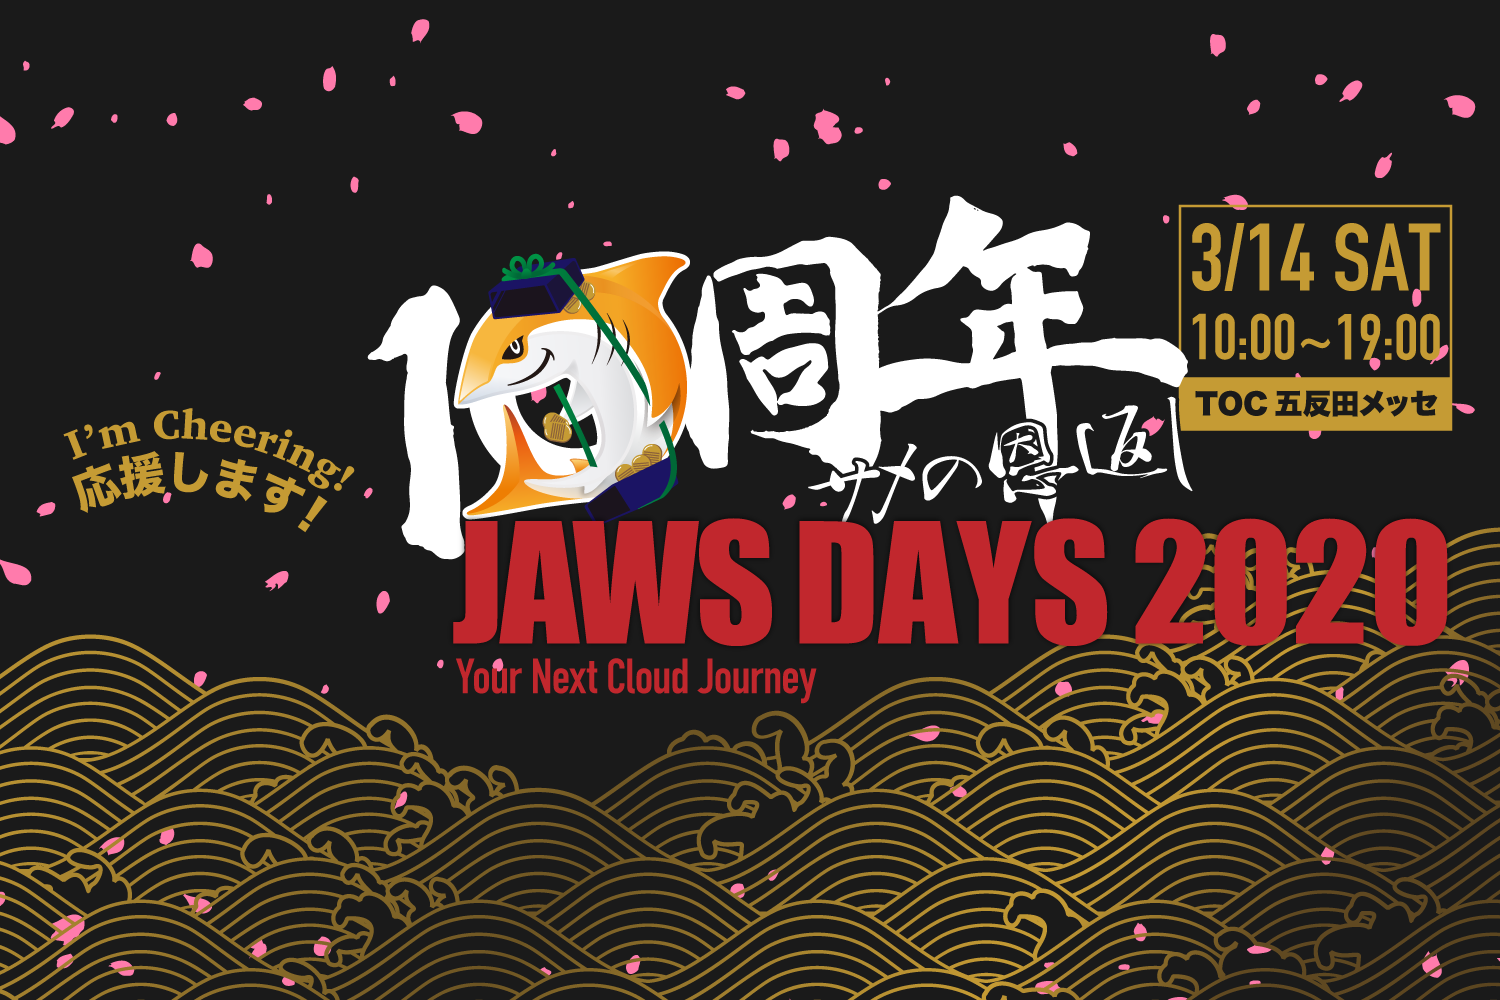 https://jawsdays2020.jaws-ug.jp/wp-content/uploads/2020/01/facebook-cover-for-cheer.png